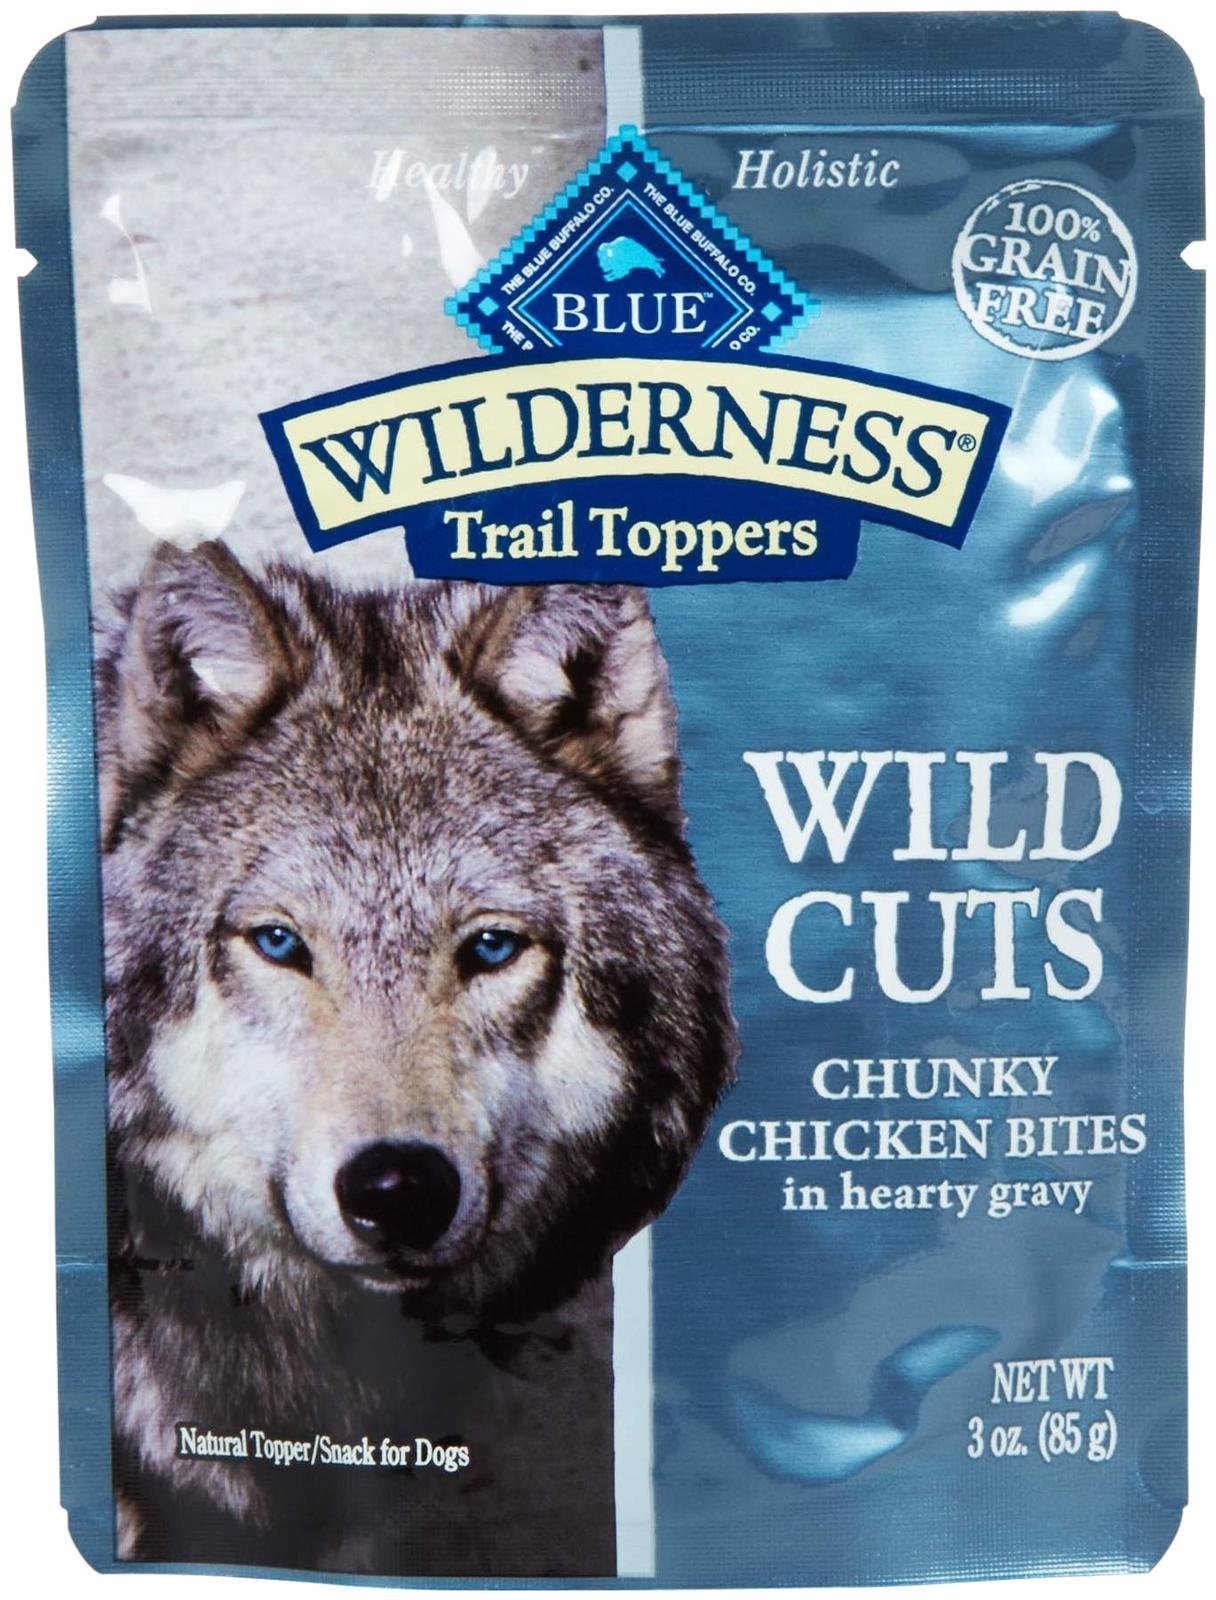 Blue Buffalo Wilderness Trail Toppers Chunky Chicken Bites Dog Food, 24 By 3 Oz. by Blue Buffalo